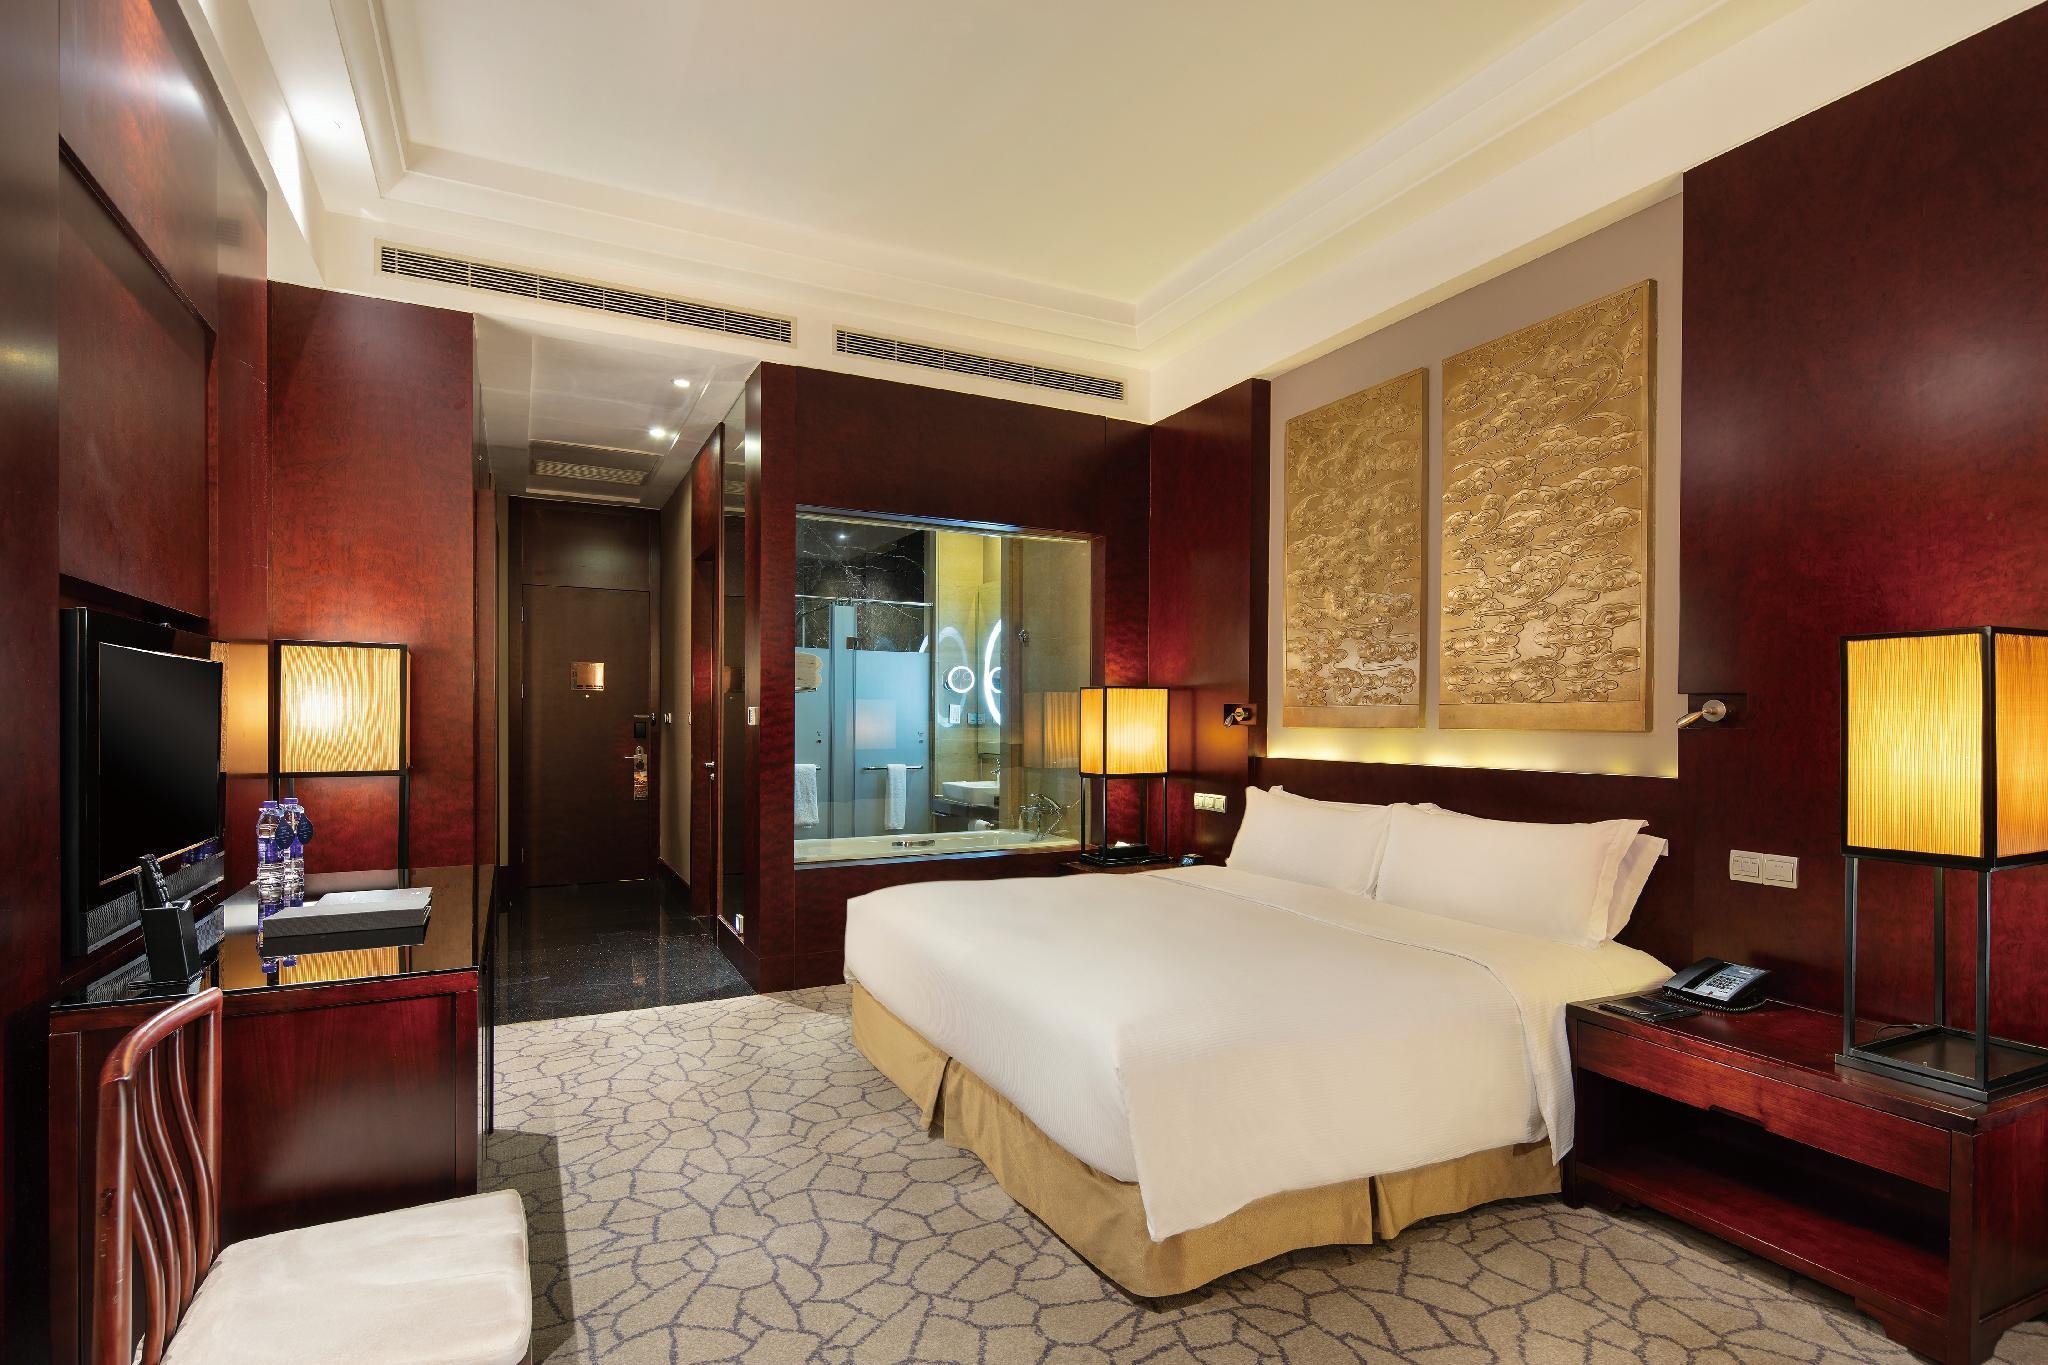 King Plus Hilton Guestroom